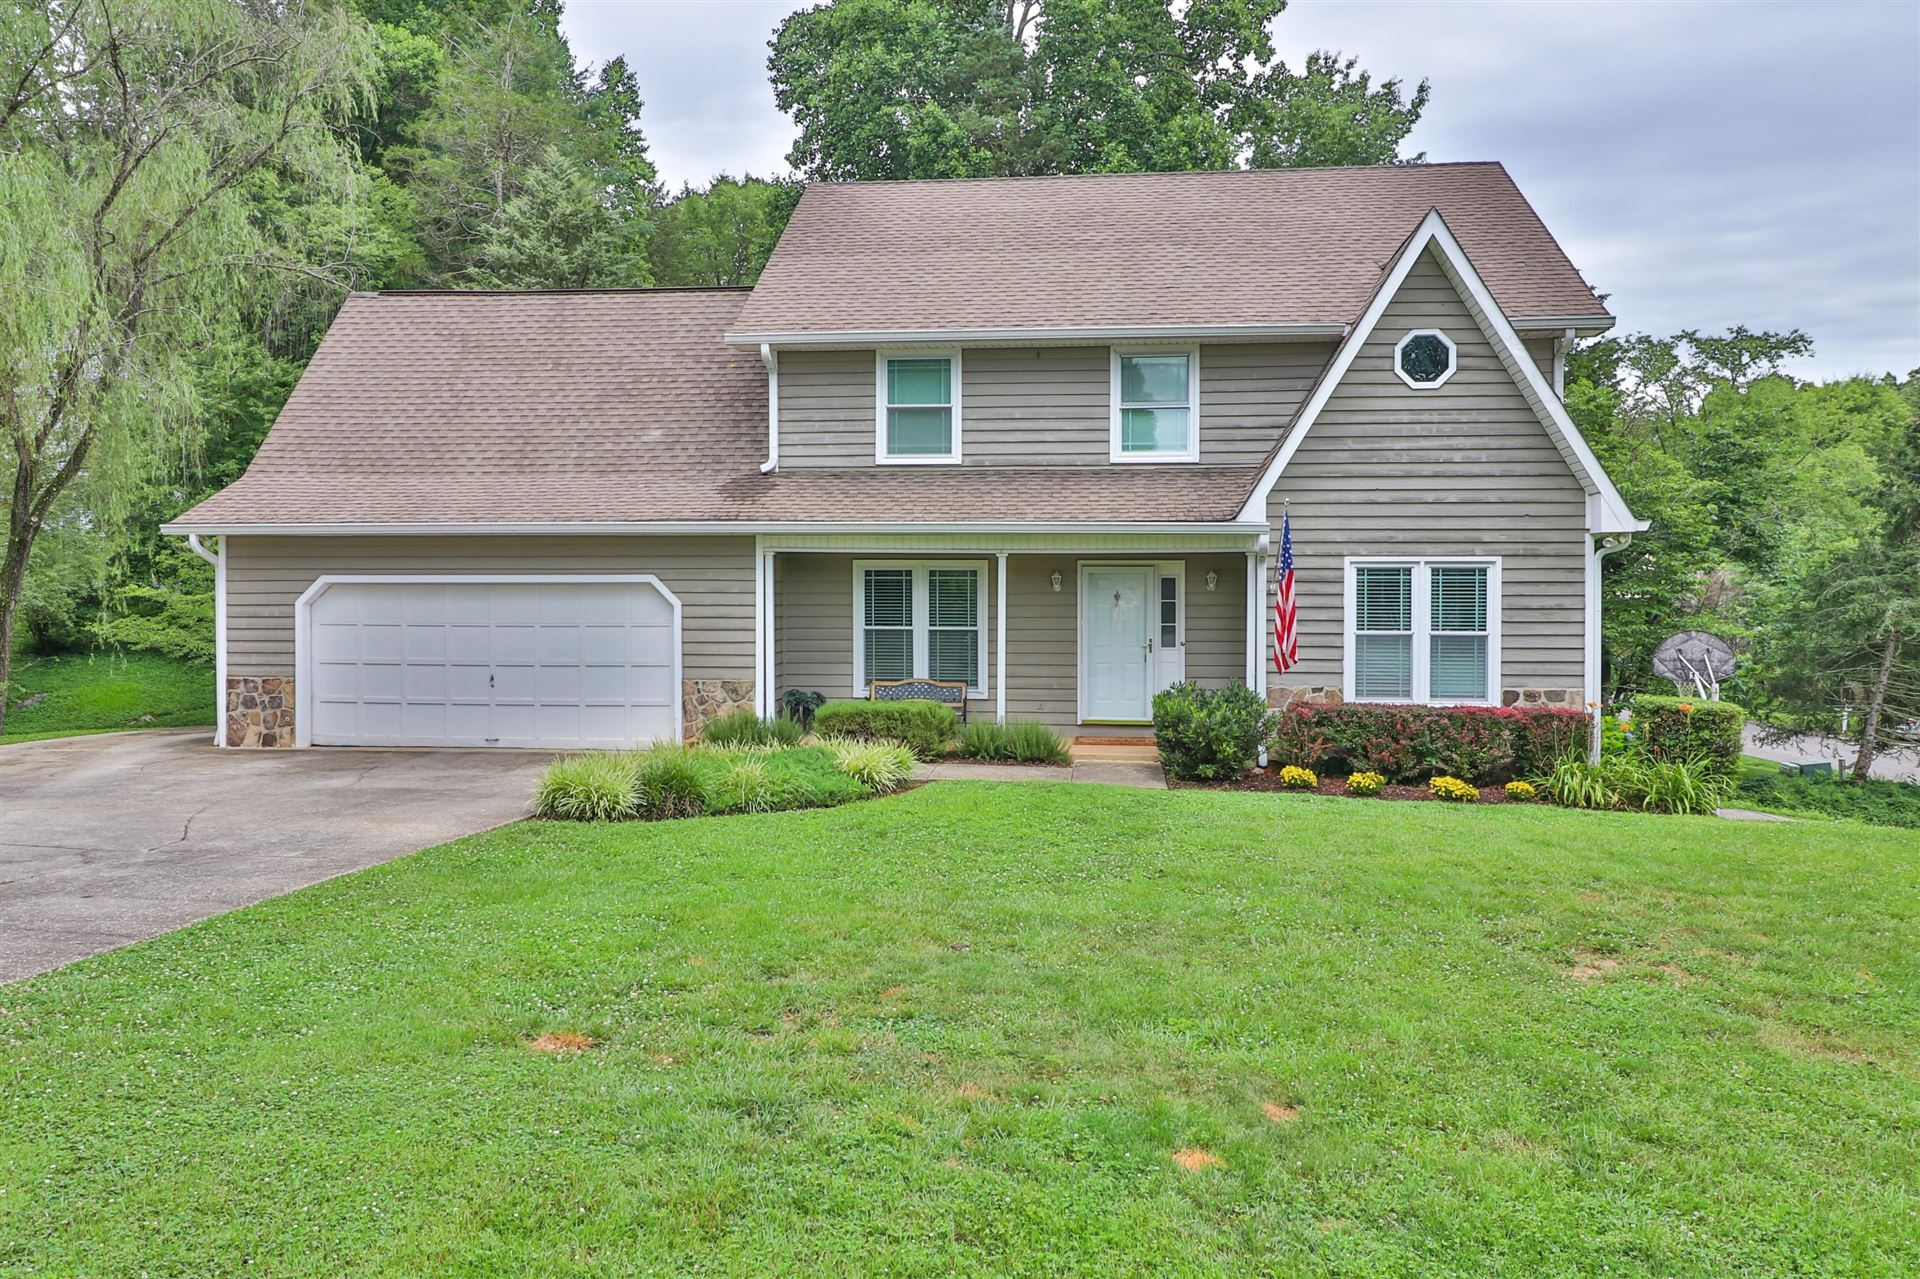 Photo of 100 Mallard Lane, Oak Ridge, TN 37830 (MLS # 1121402)